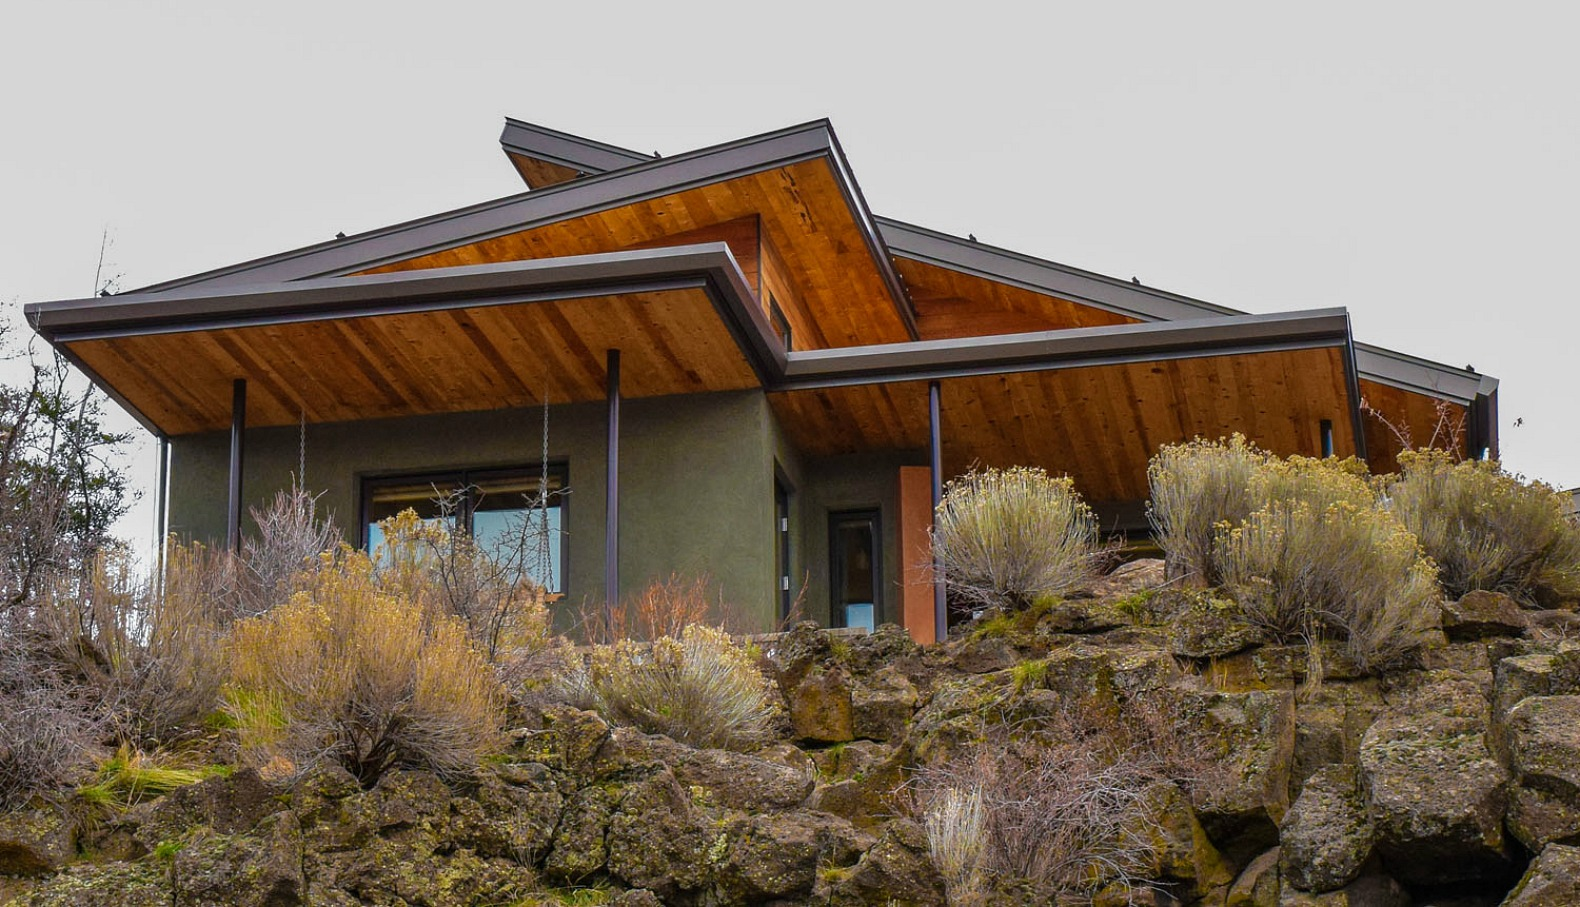 Oregon couple spends years building their net-zero 'extreme ... on desert small homes, desert modern homes, desert dome homes, desert pool homes, desert sustainable homes,